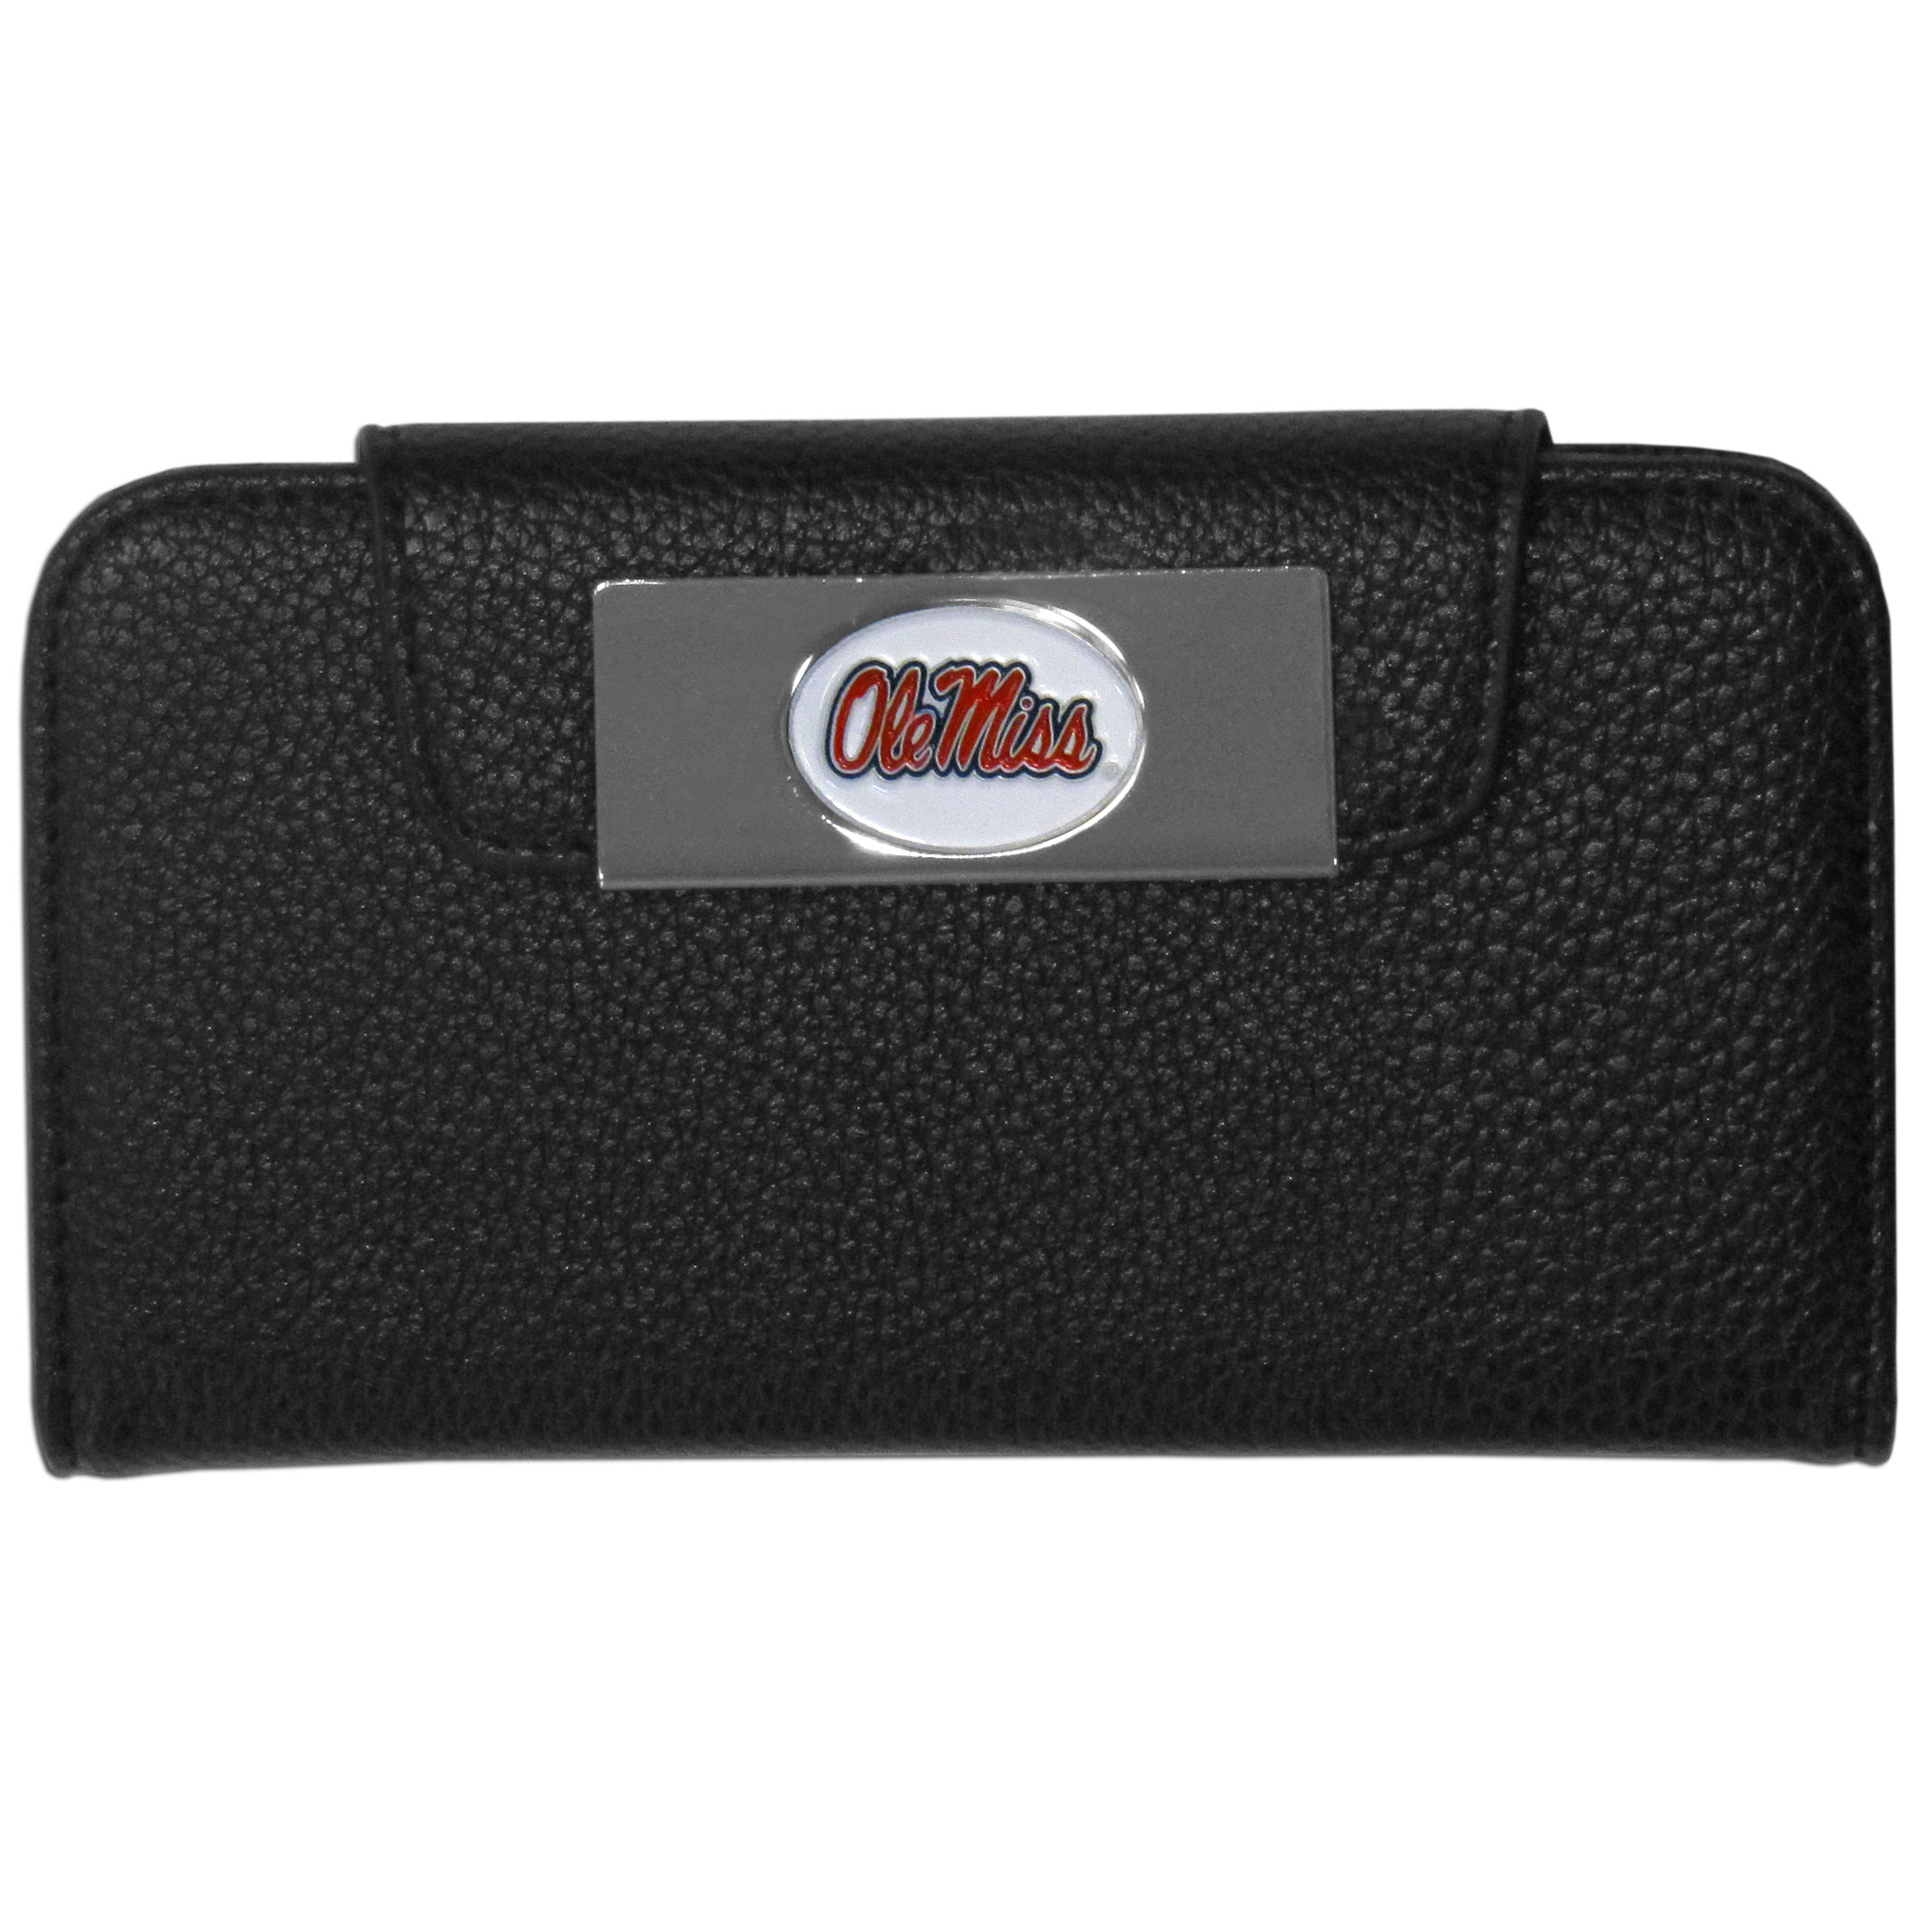 Mississippi Rebels Samsung Galaxy S4 Wallet Case - This new & wildly popular case is ideal for those who like to travel light! The stylish case has an inner hard shell that securely holds your phone while allowing complete access to the phone's functionality. The flip cover has slots for credit cards, business cards and identification. The magnetic flip cover has a metal Mississippi Rebels emblem on a high polish chrome backing. Fits the Samsung Galaxy S4